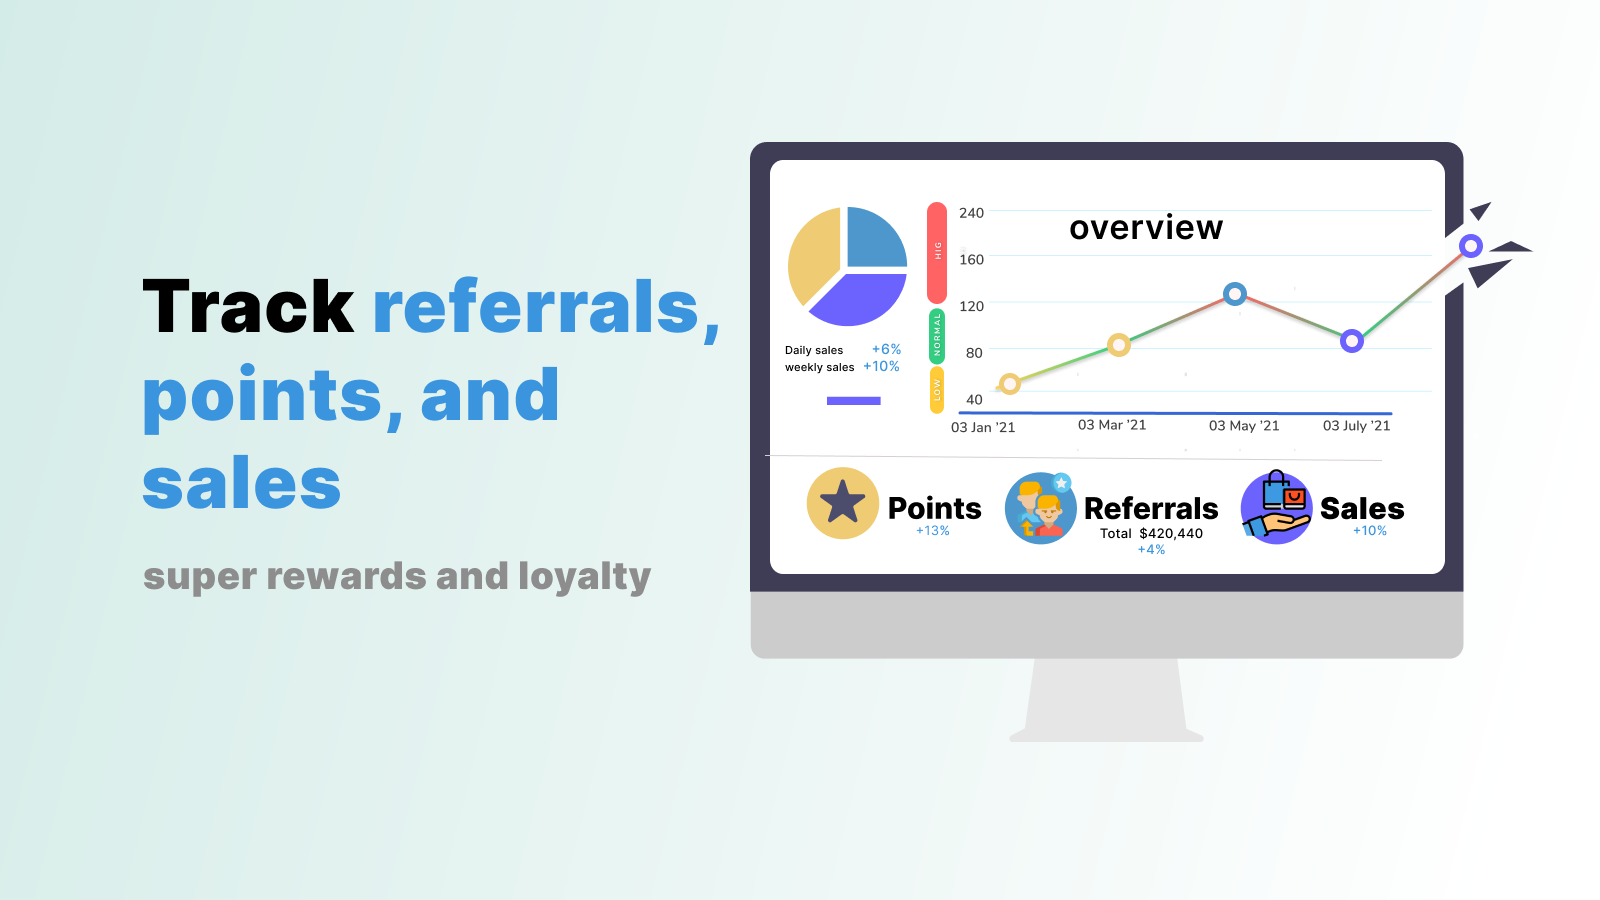 Detailed analytics to track referrals, sales and points.